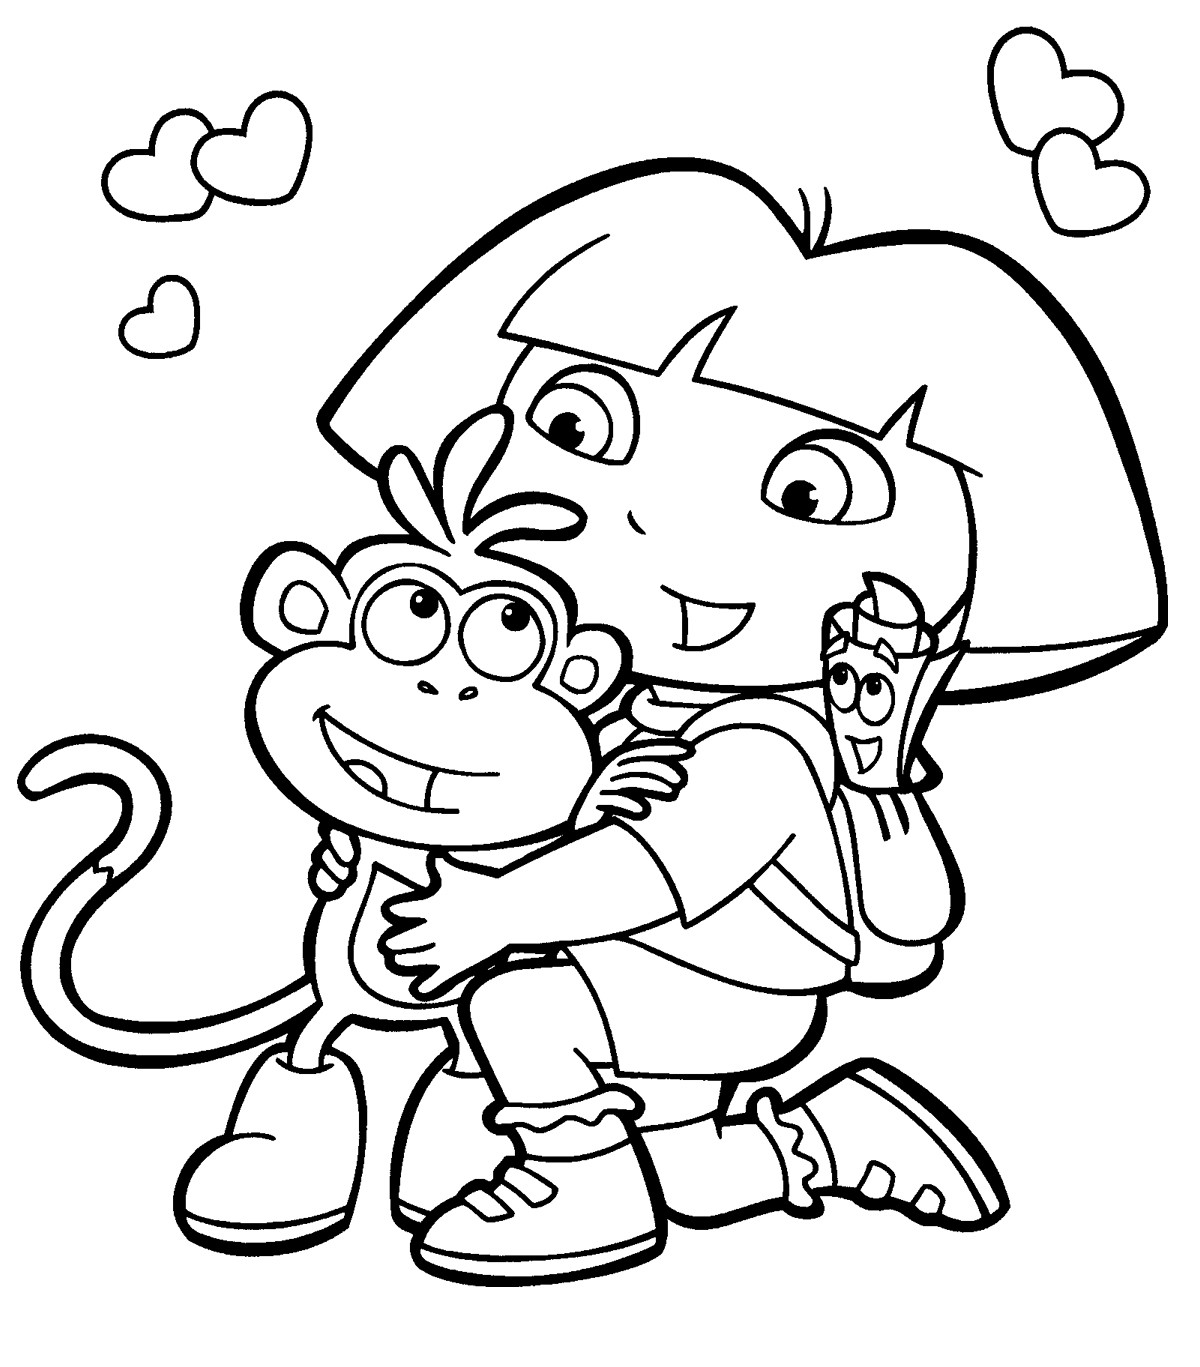 1200x1367 Luxury Coloring Pages For Girls About Remodel Coloring For Kids